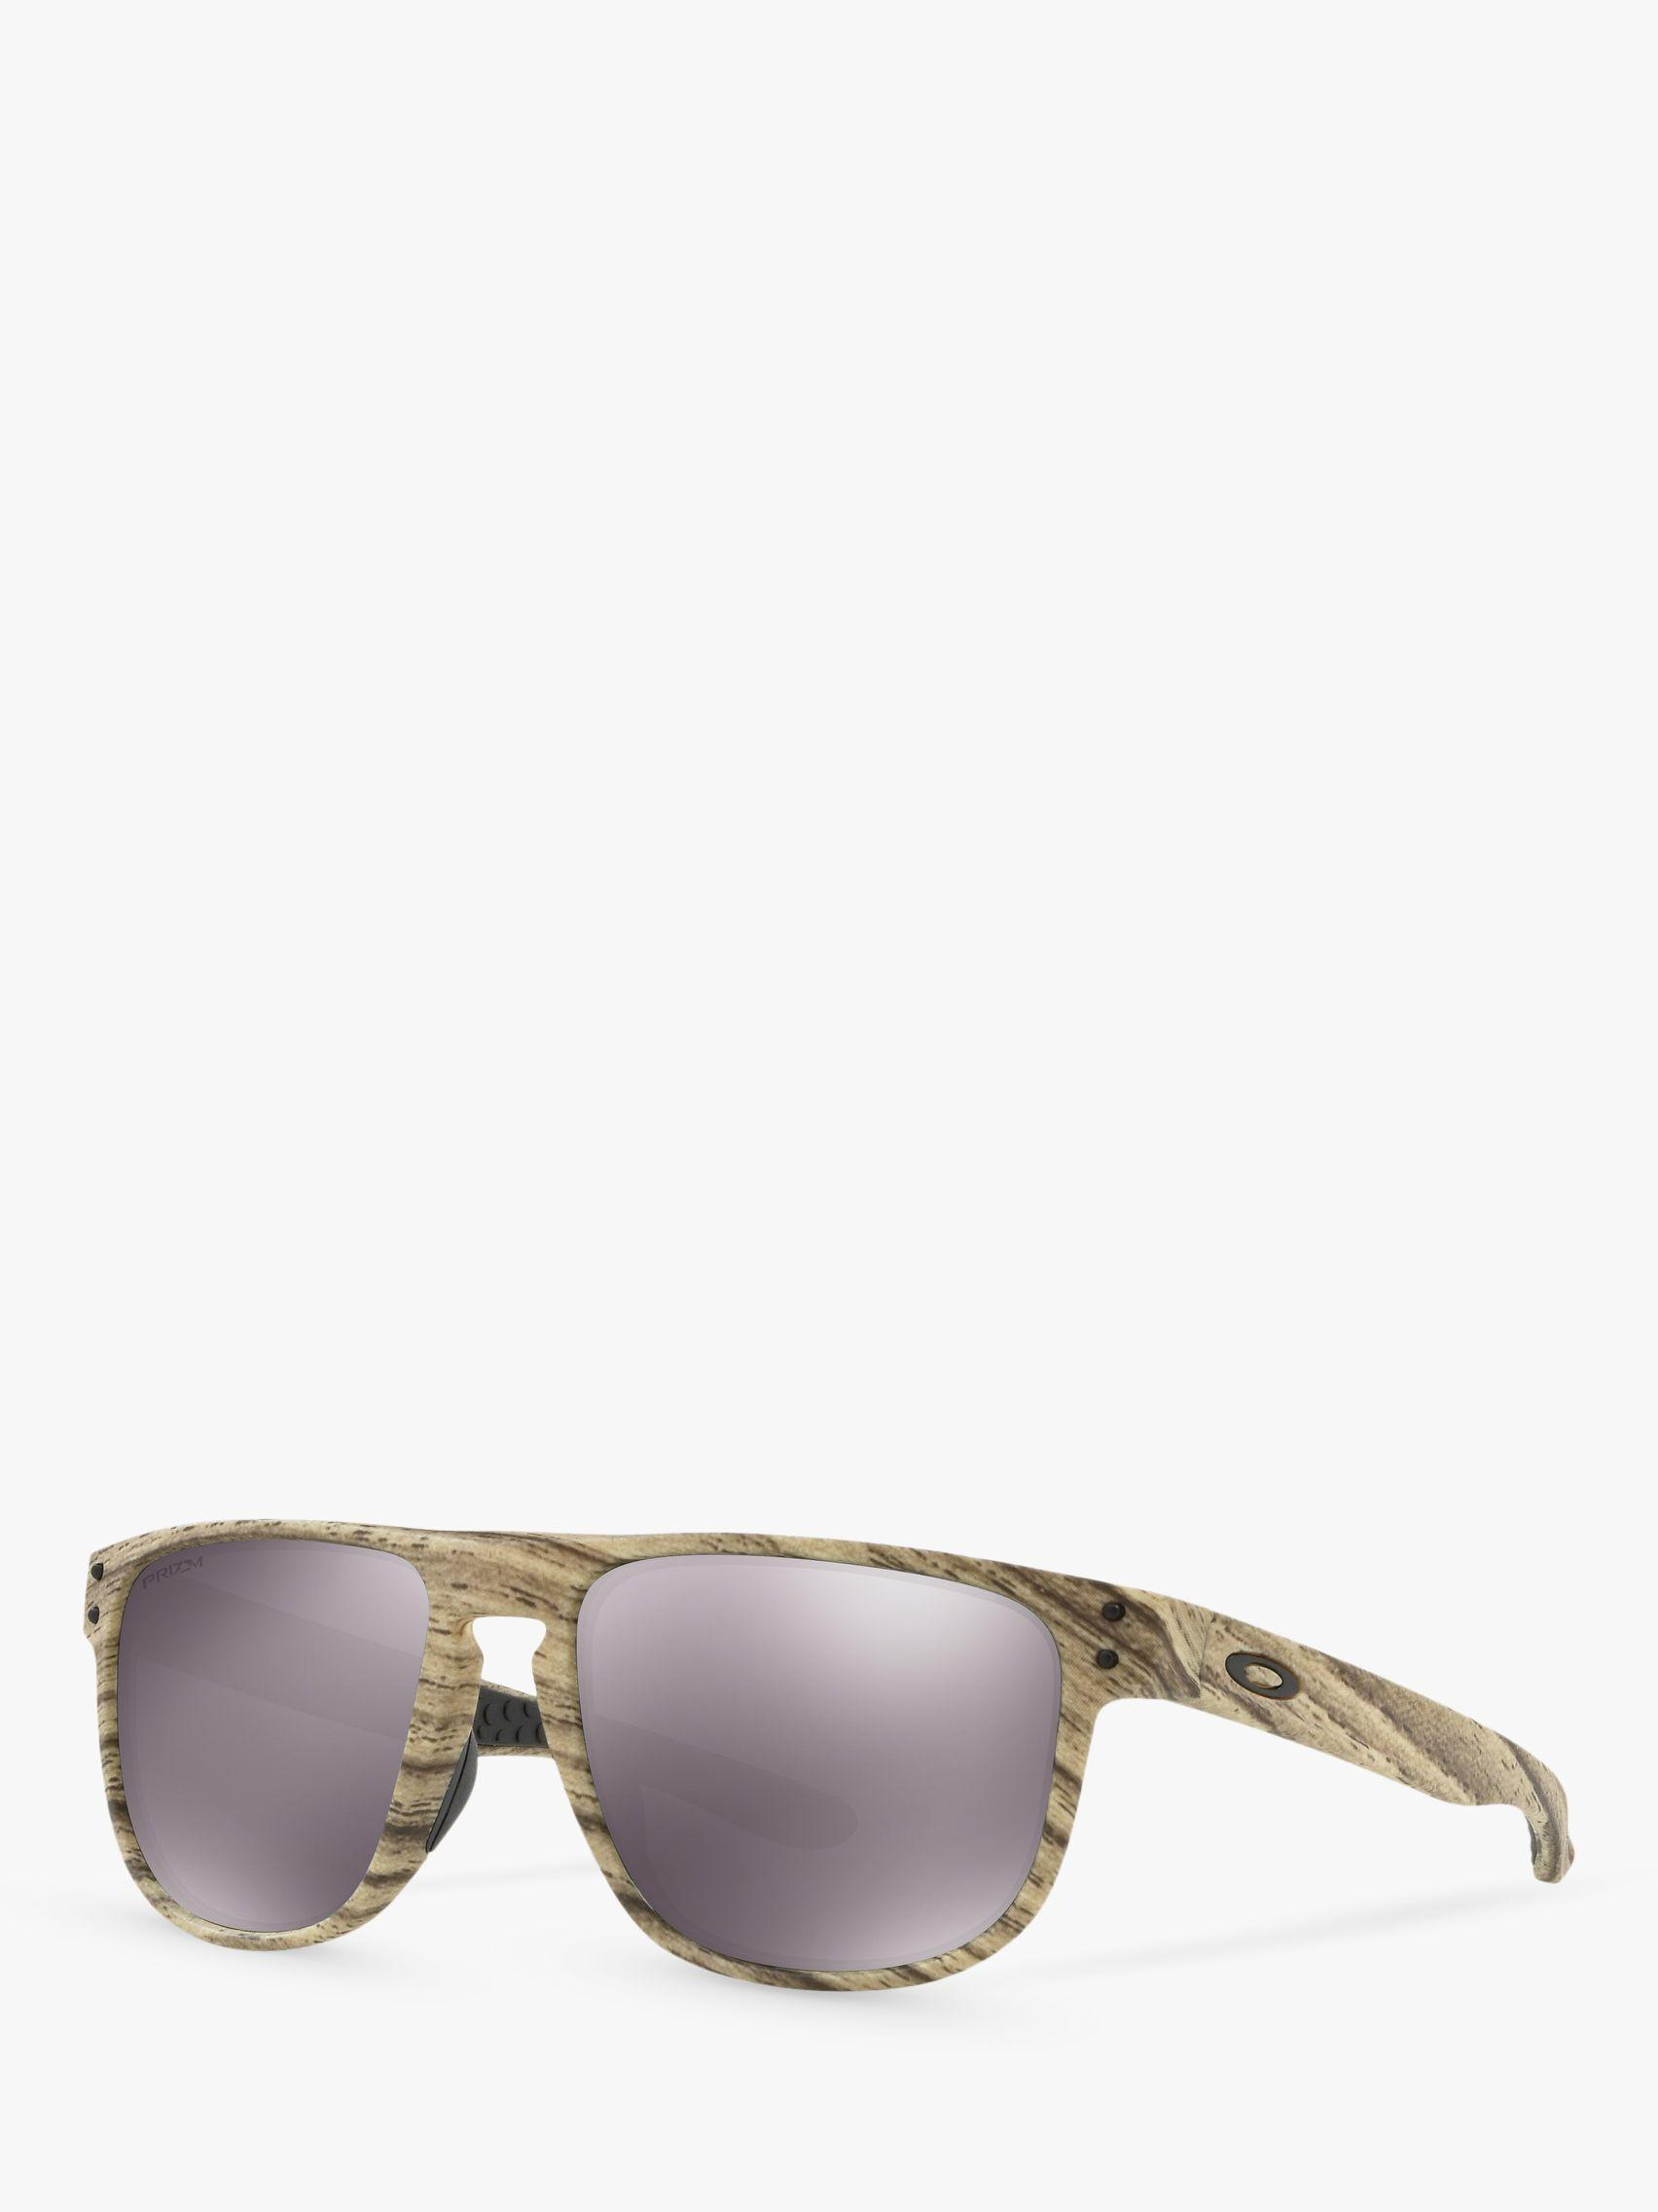 05ea948030 Oakley. Men s Oo9377 Holbrook Polarised Square Sunglasses. £140 From John  Lewis and Partners ...